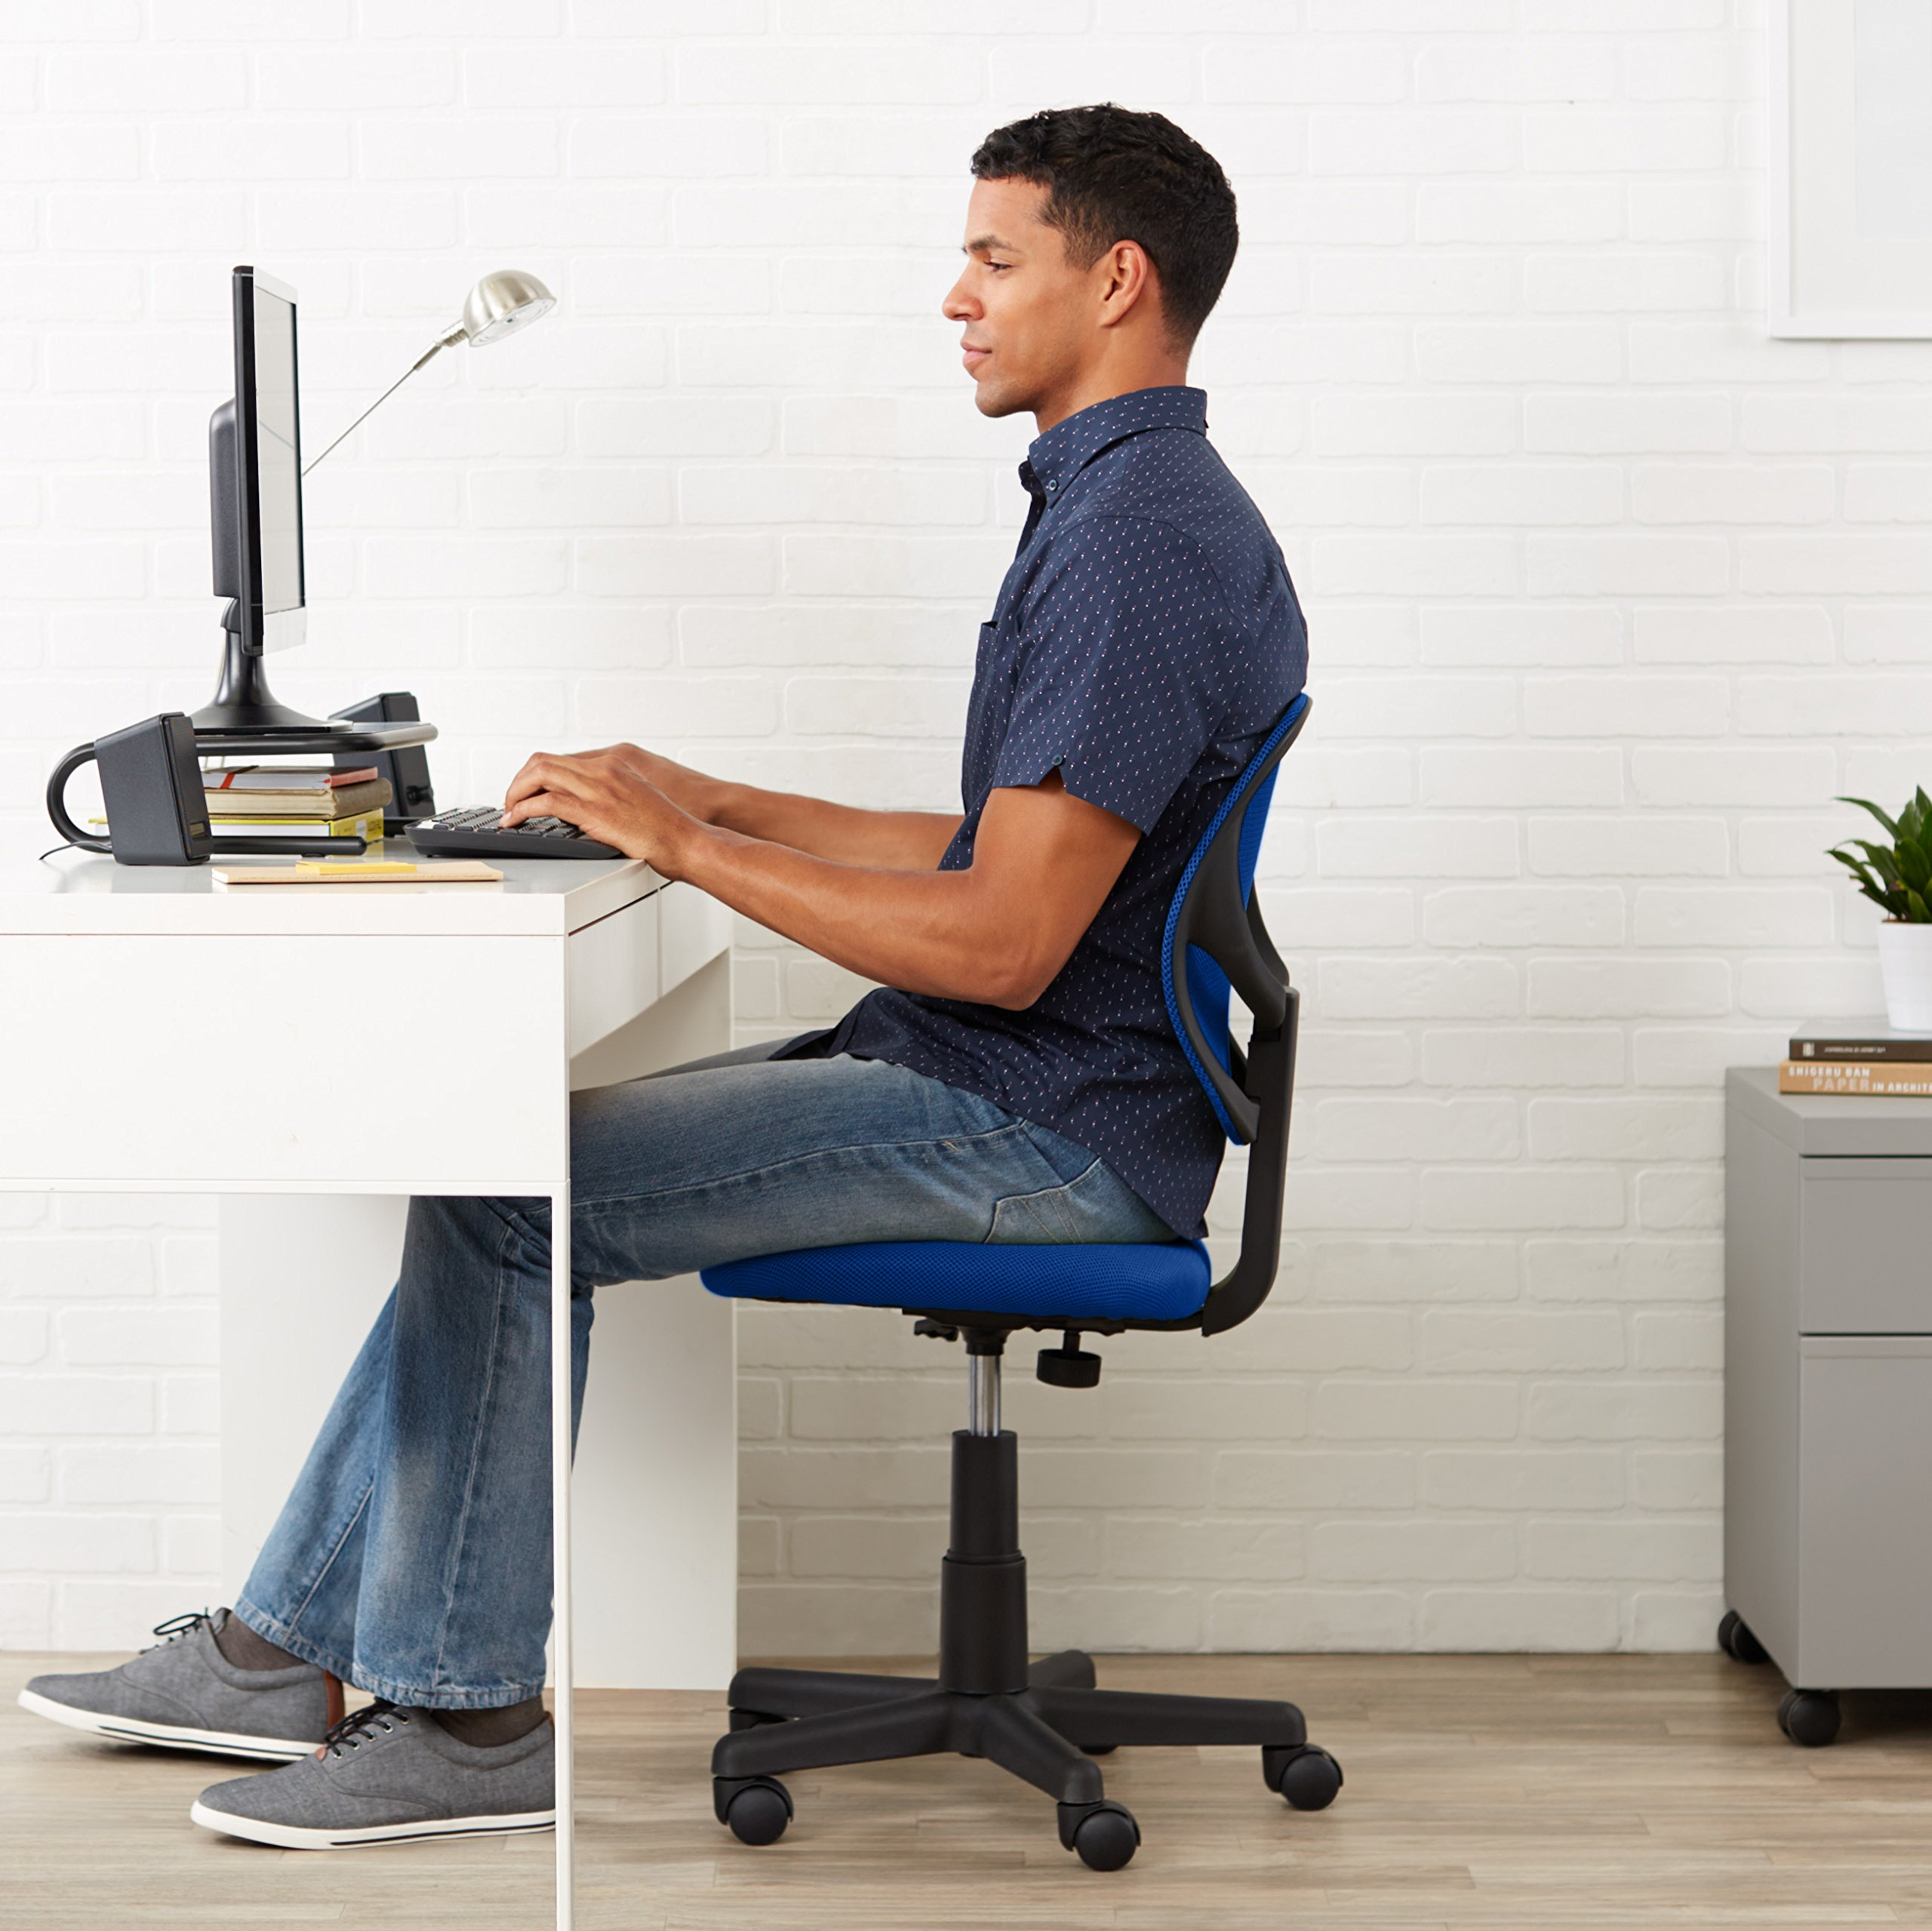 AmazonBasics Low-Back Computer Task Office Desk Chair with Swivel Casters - Blue by AmazonBasics (Image #2)